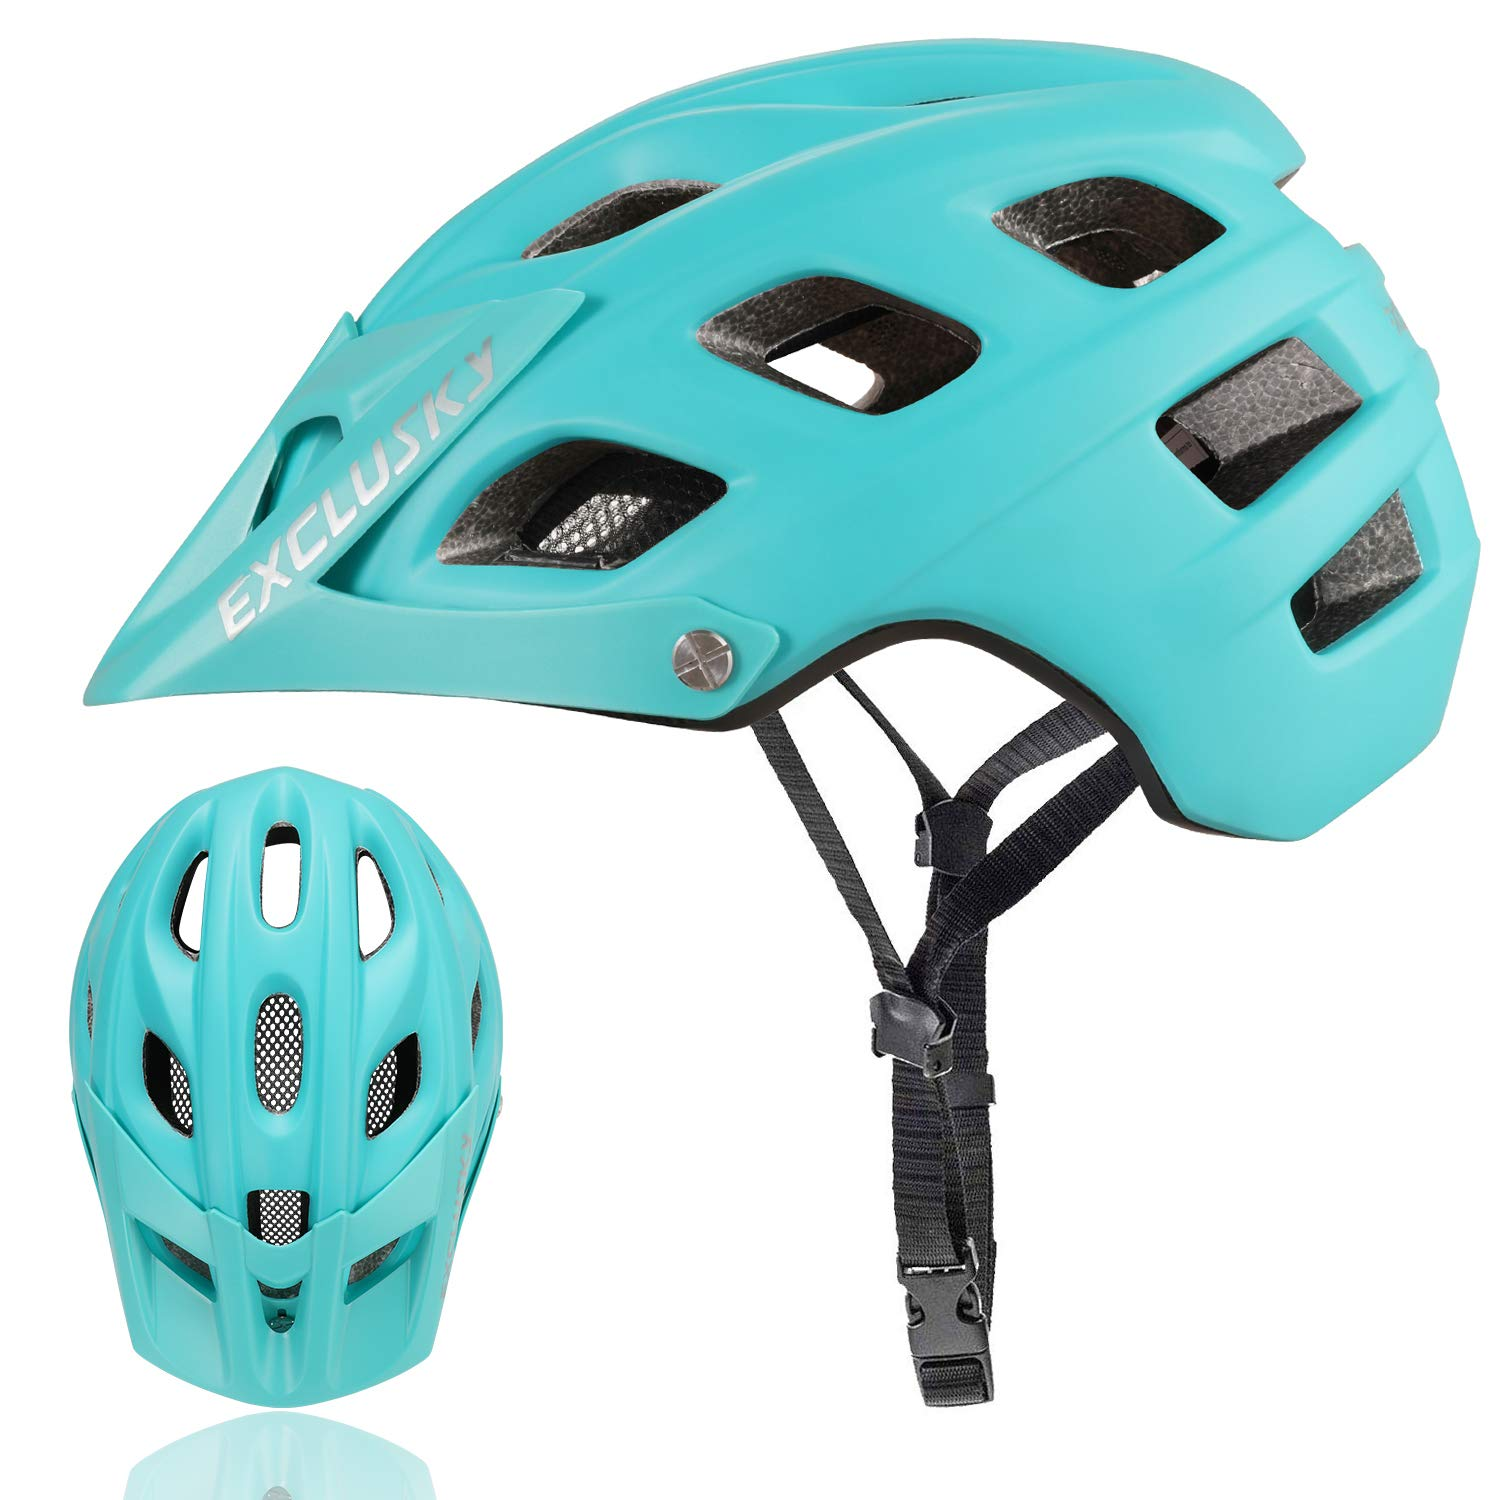 Exclusky Mountain Bike Helmet with Detachable Visor for Adult Women and Men - Adjustable M L Size (22.05-24.01 Inches) by Exclusky